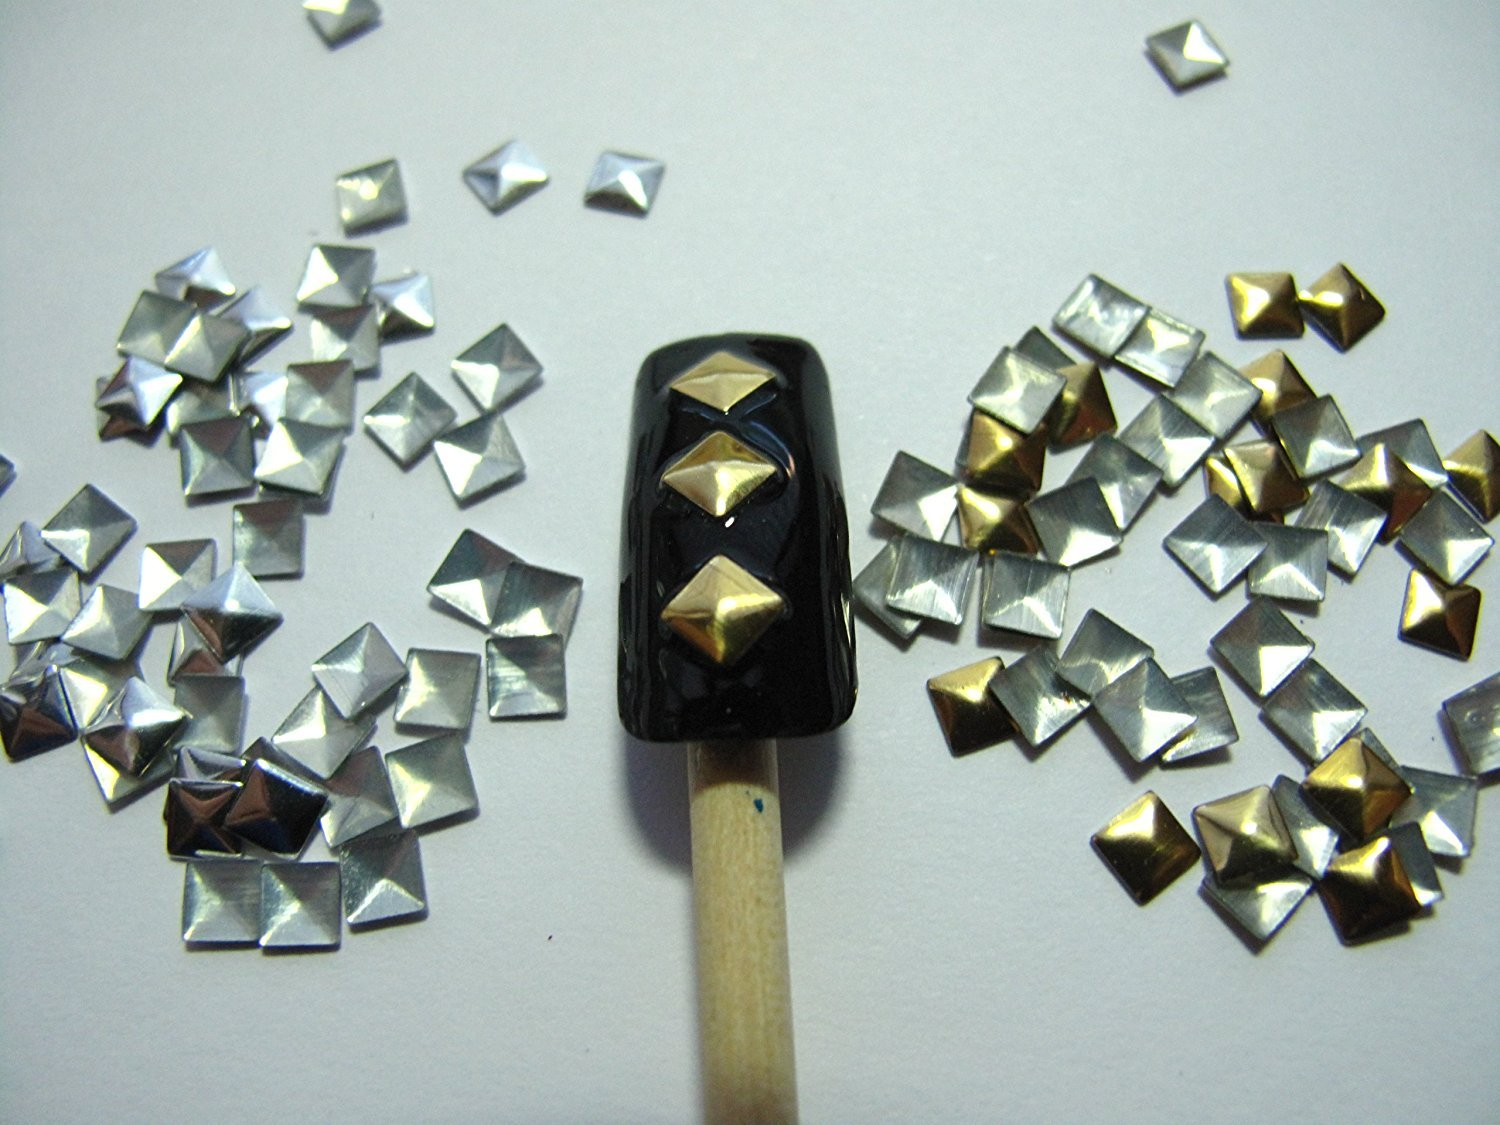 Nail Art 270 Pieces Gold & Silver 4mm Square Metal Studs for Nails, Cellphones BTArtbox